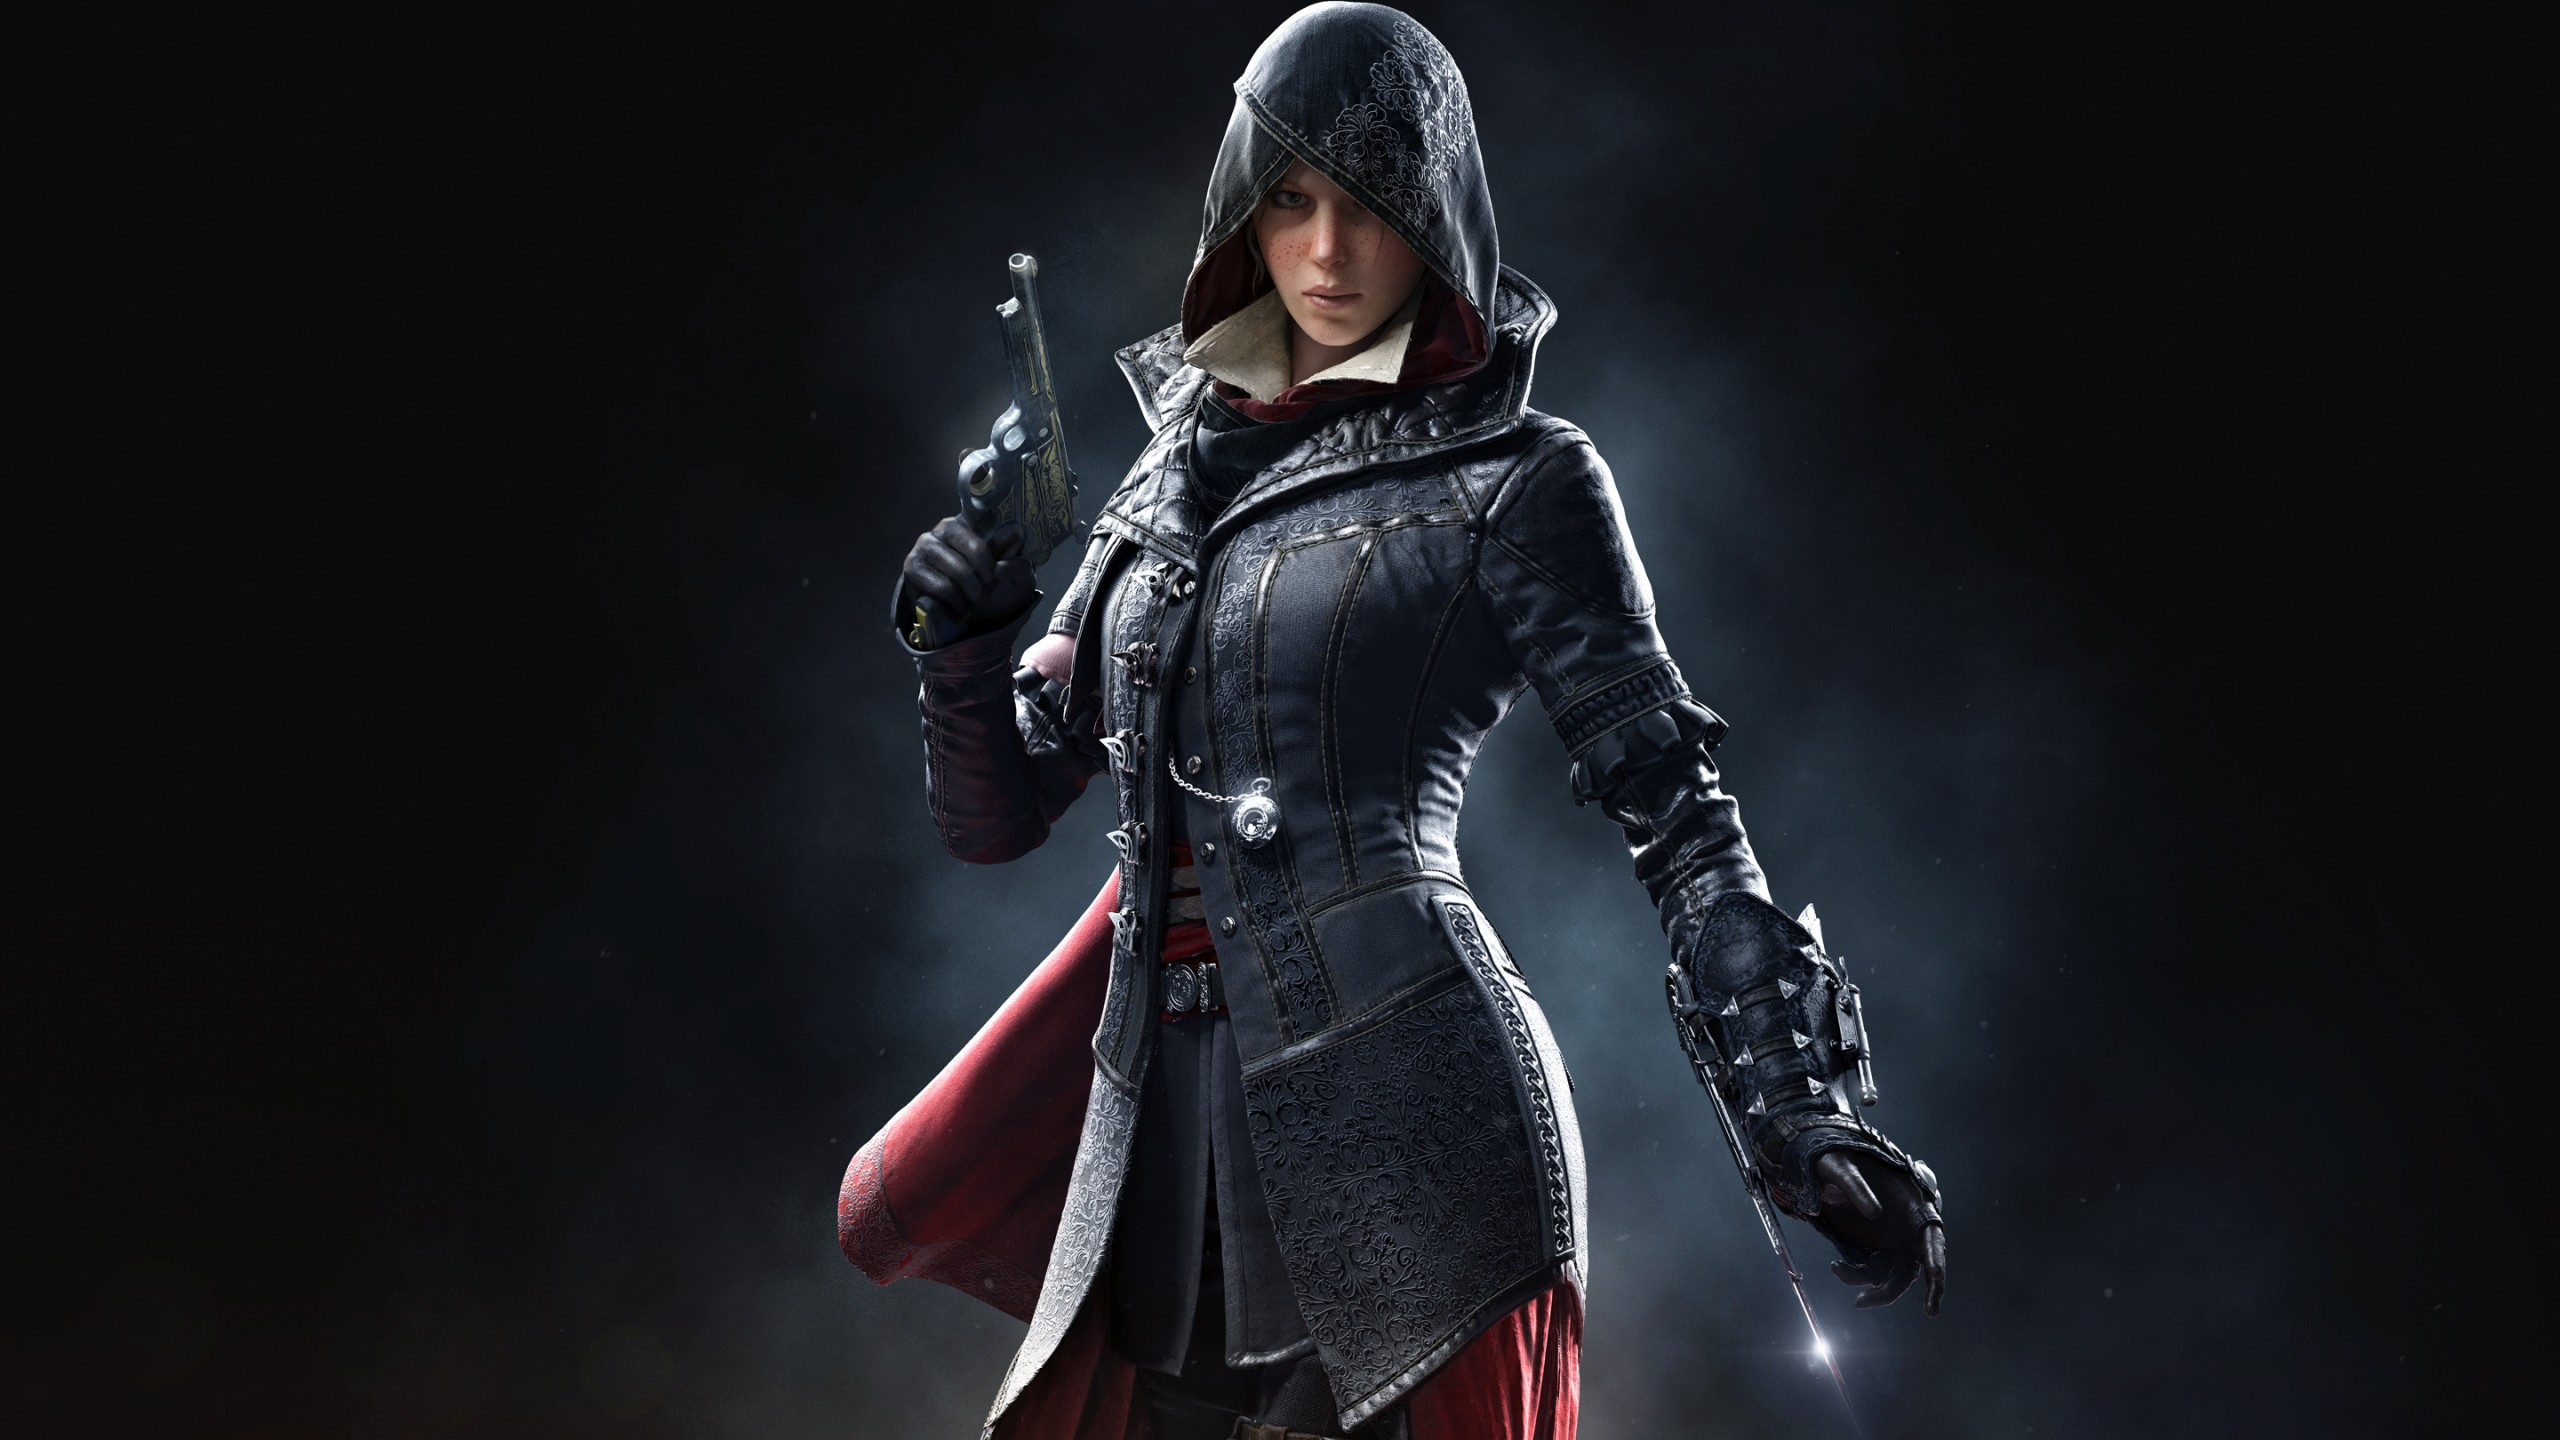 Evie Frye looks daring and dangerous as Assassin's Creed first main story playable female assassin.